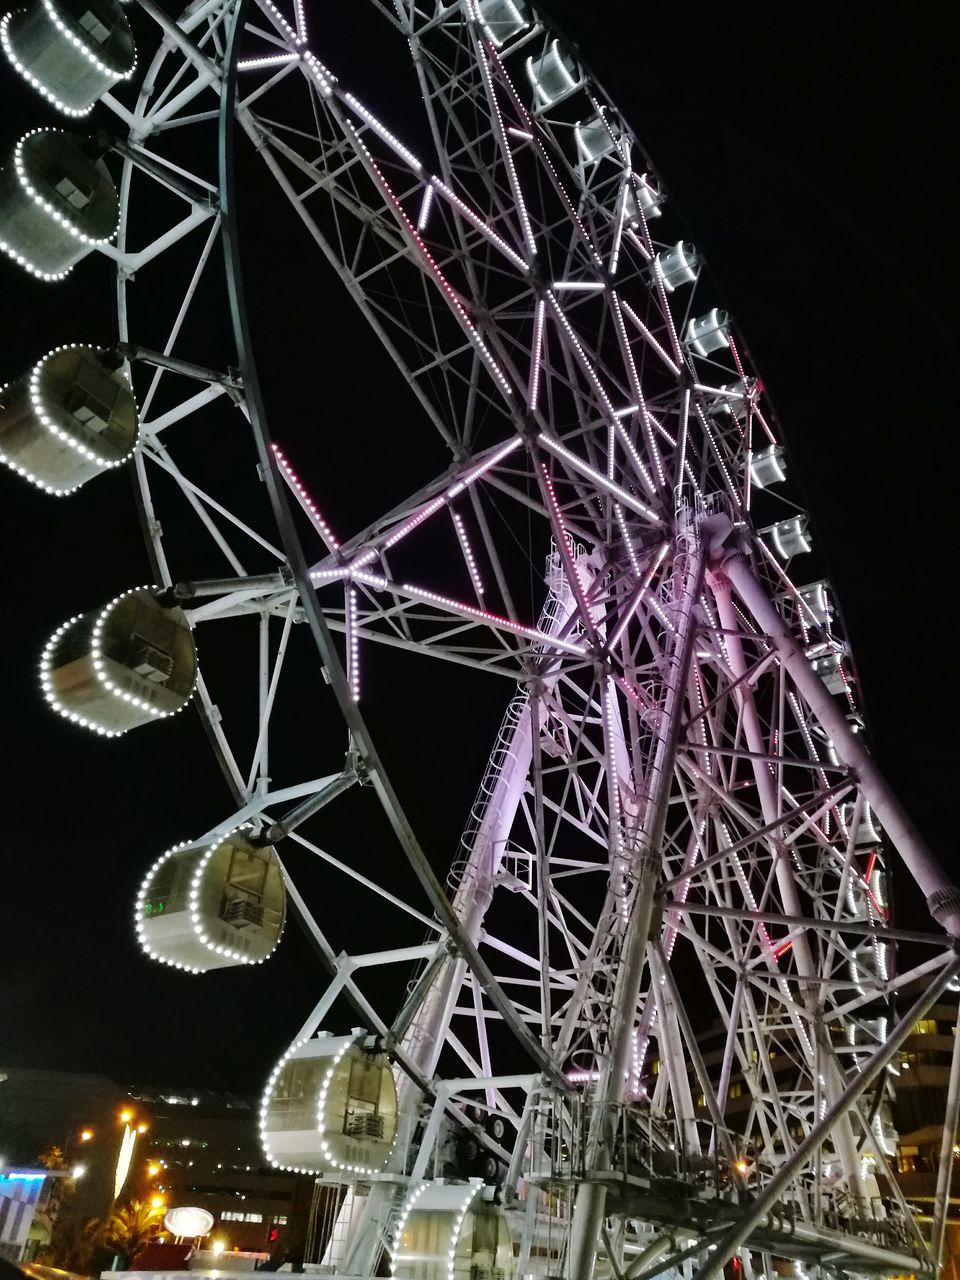 night, amusement park, low angle view, arts culture and entertainment, amusement park ride, ferris wheel, big wheel, illuminated, sky, no people, built structure, outdoors